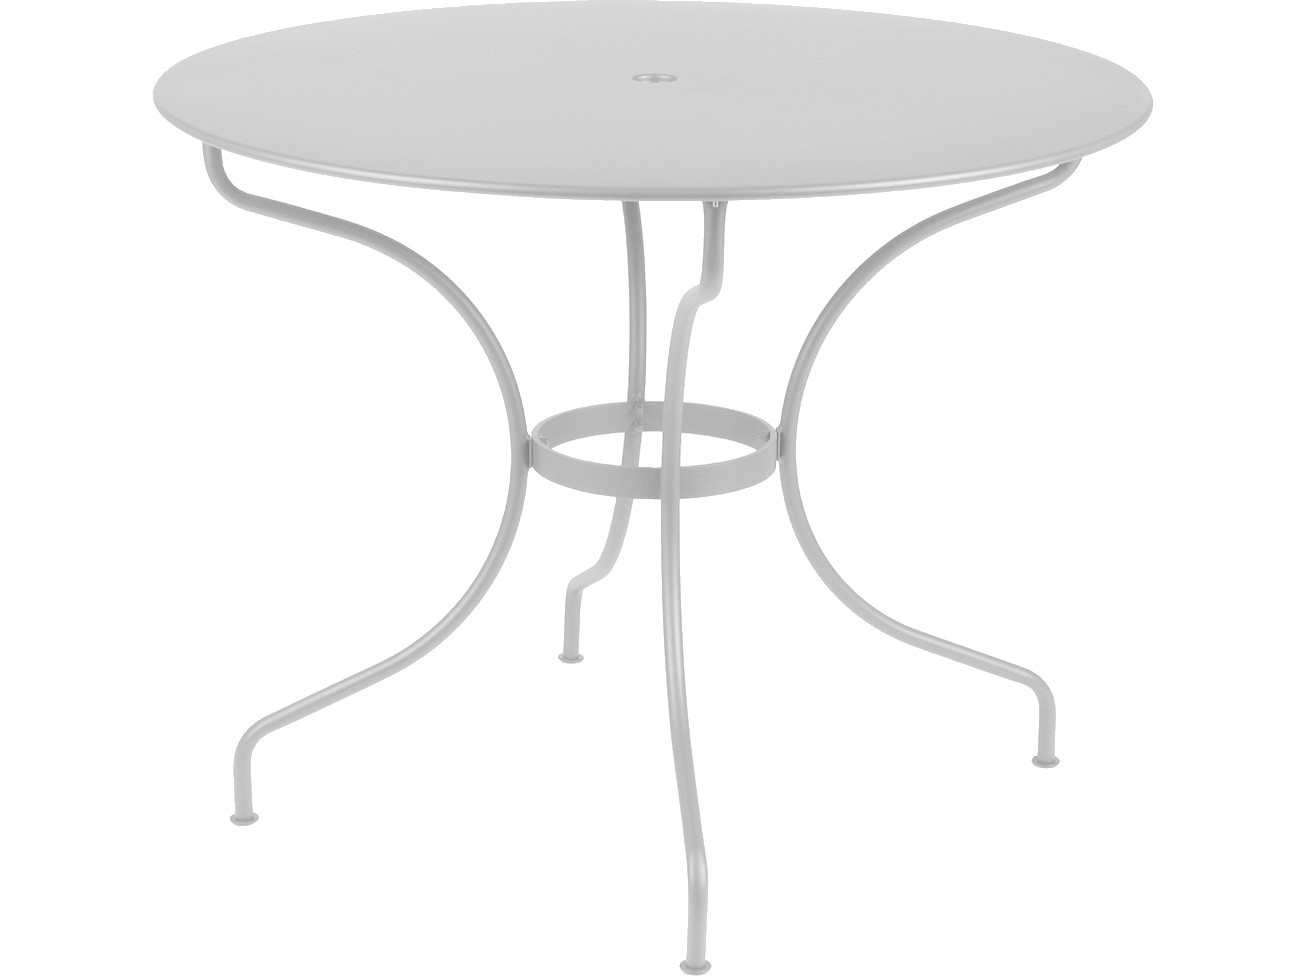 Emejing table jardin metal fermob photos amazing house design - Magasin usine fermob ...